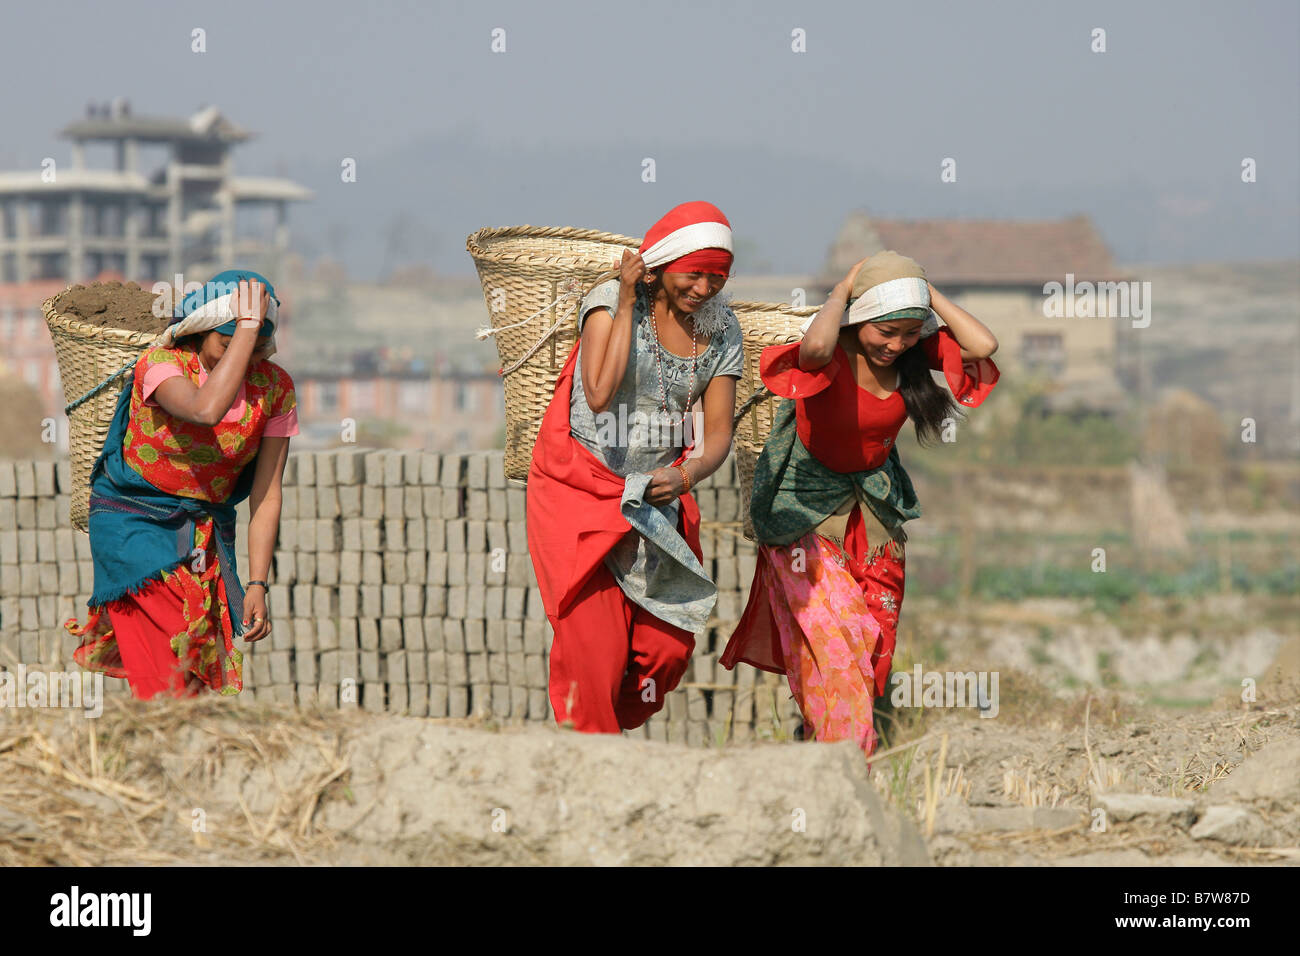 Women and girls labouring at a Nepalese brick factory - Stock Image